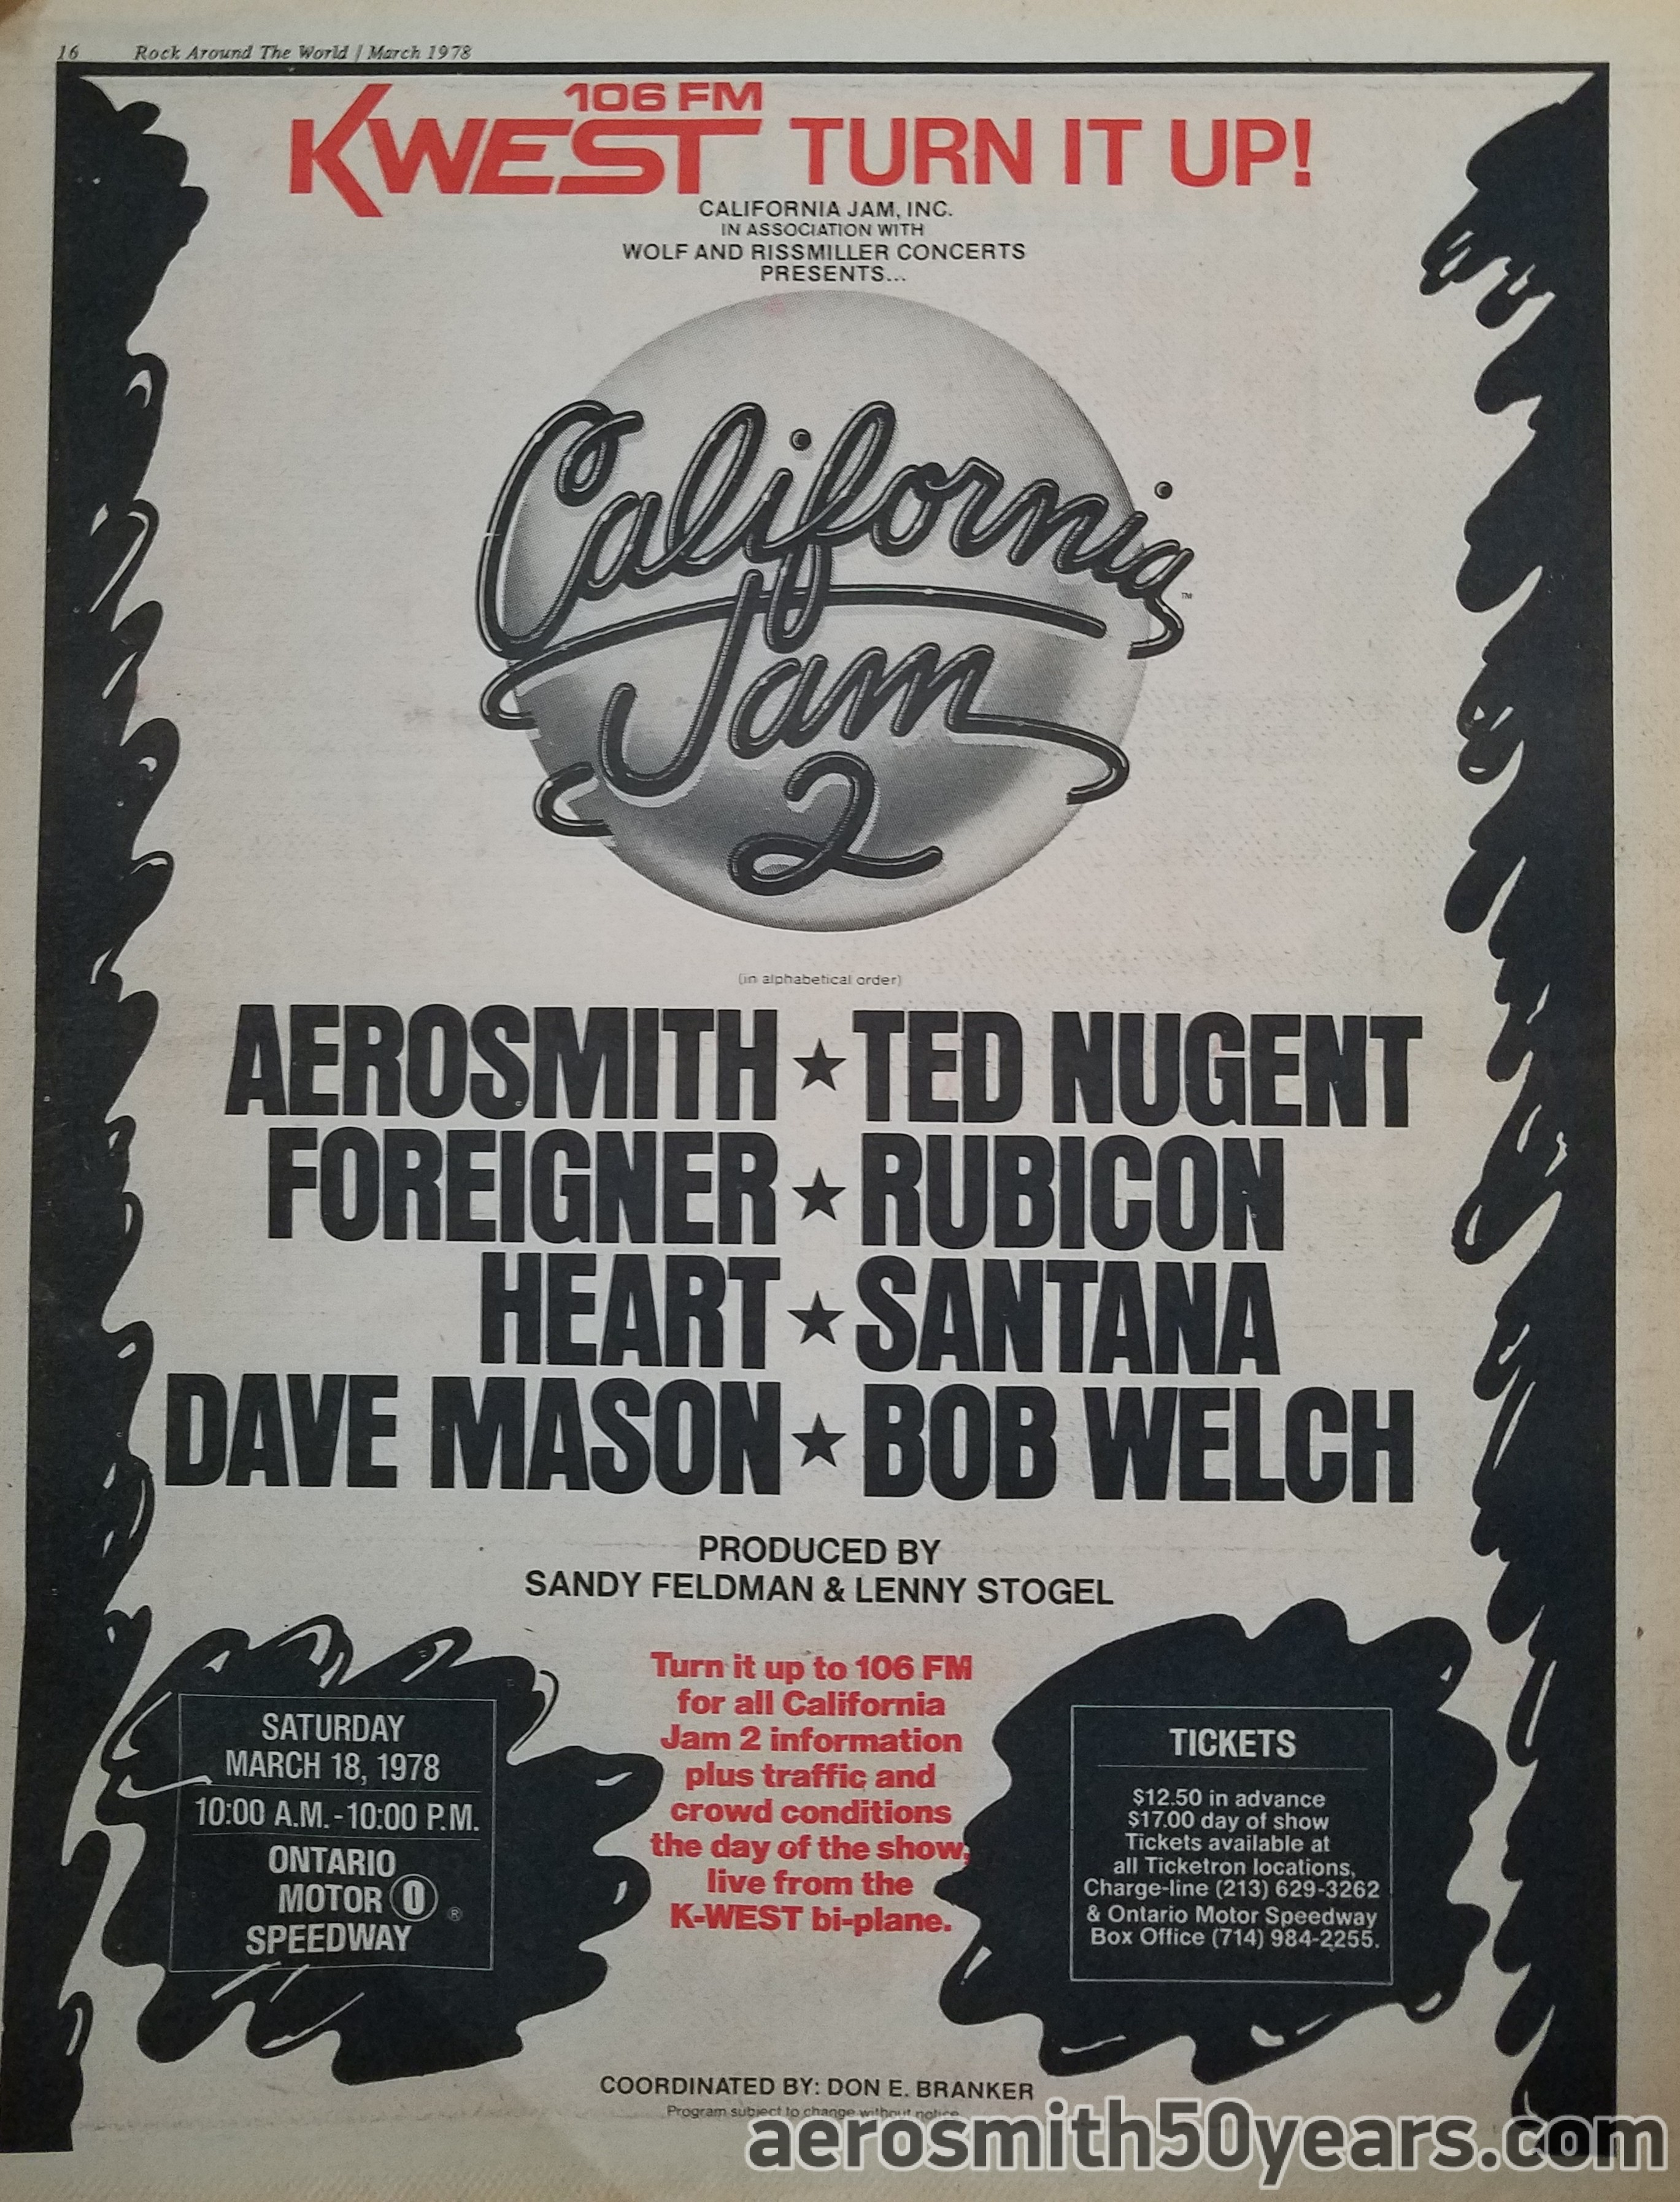 California Jam 2 March 18th 1978 Concert Ad Aerosmith